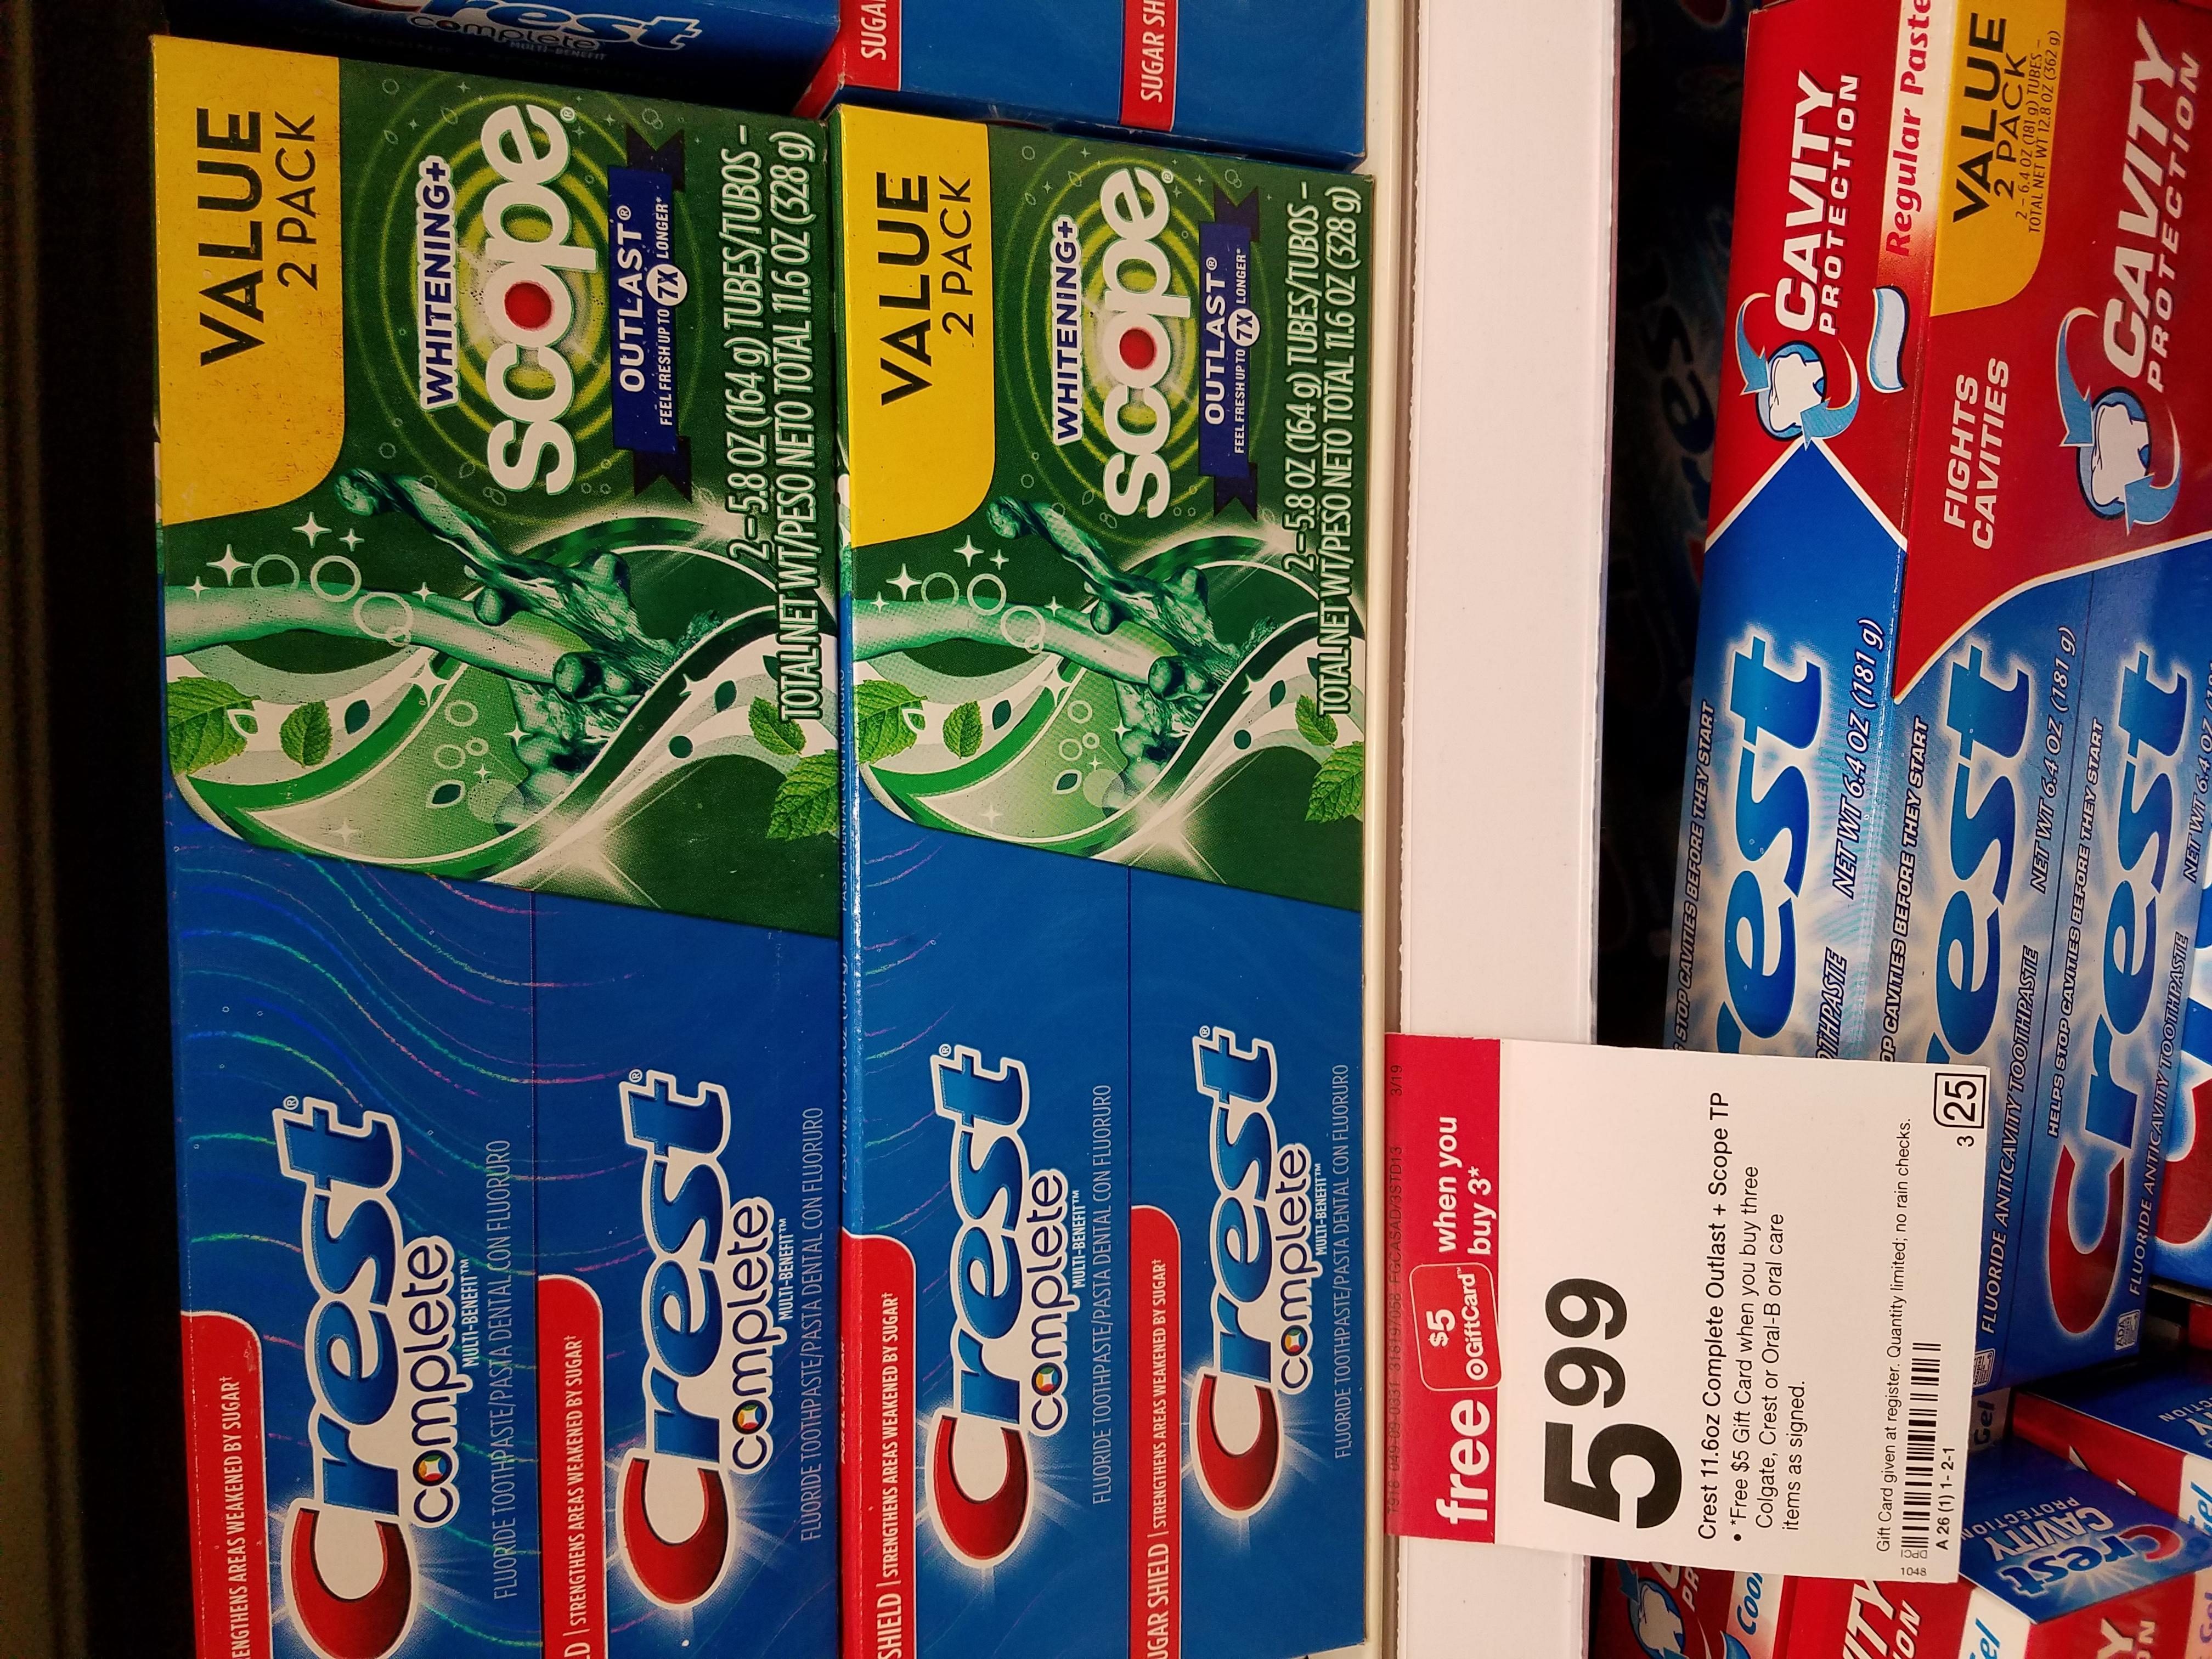 Costco And Target - Loving One, Hating One, Buying Neither ...